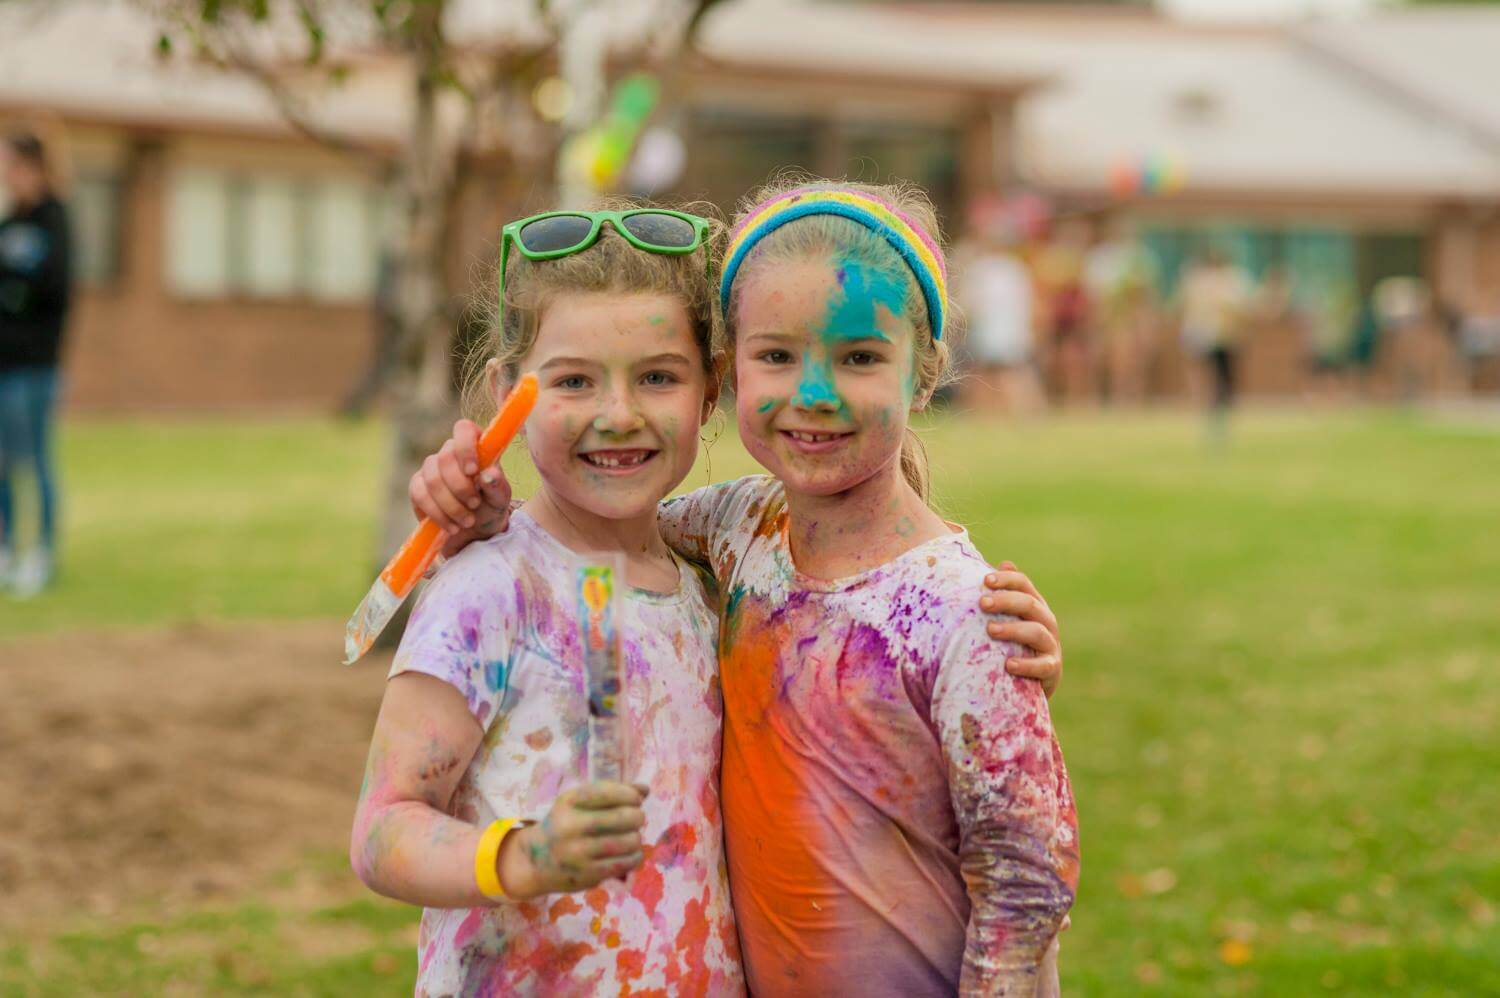 Alannah & Madeline Foundation Buddy Run image